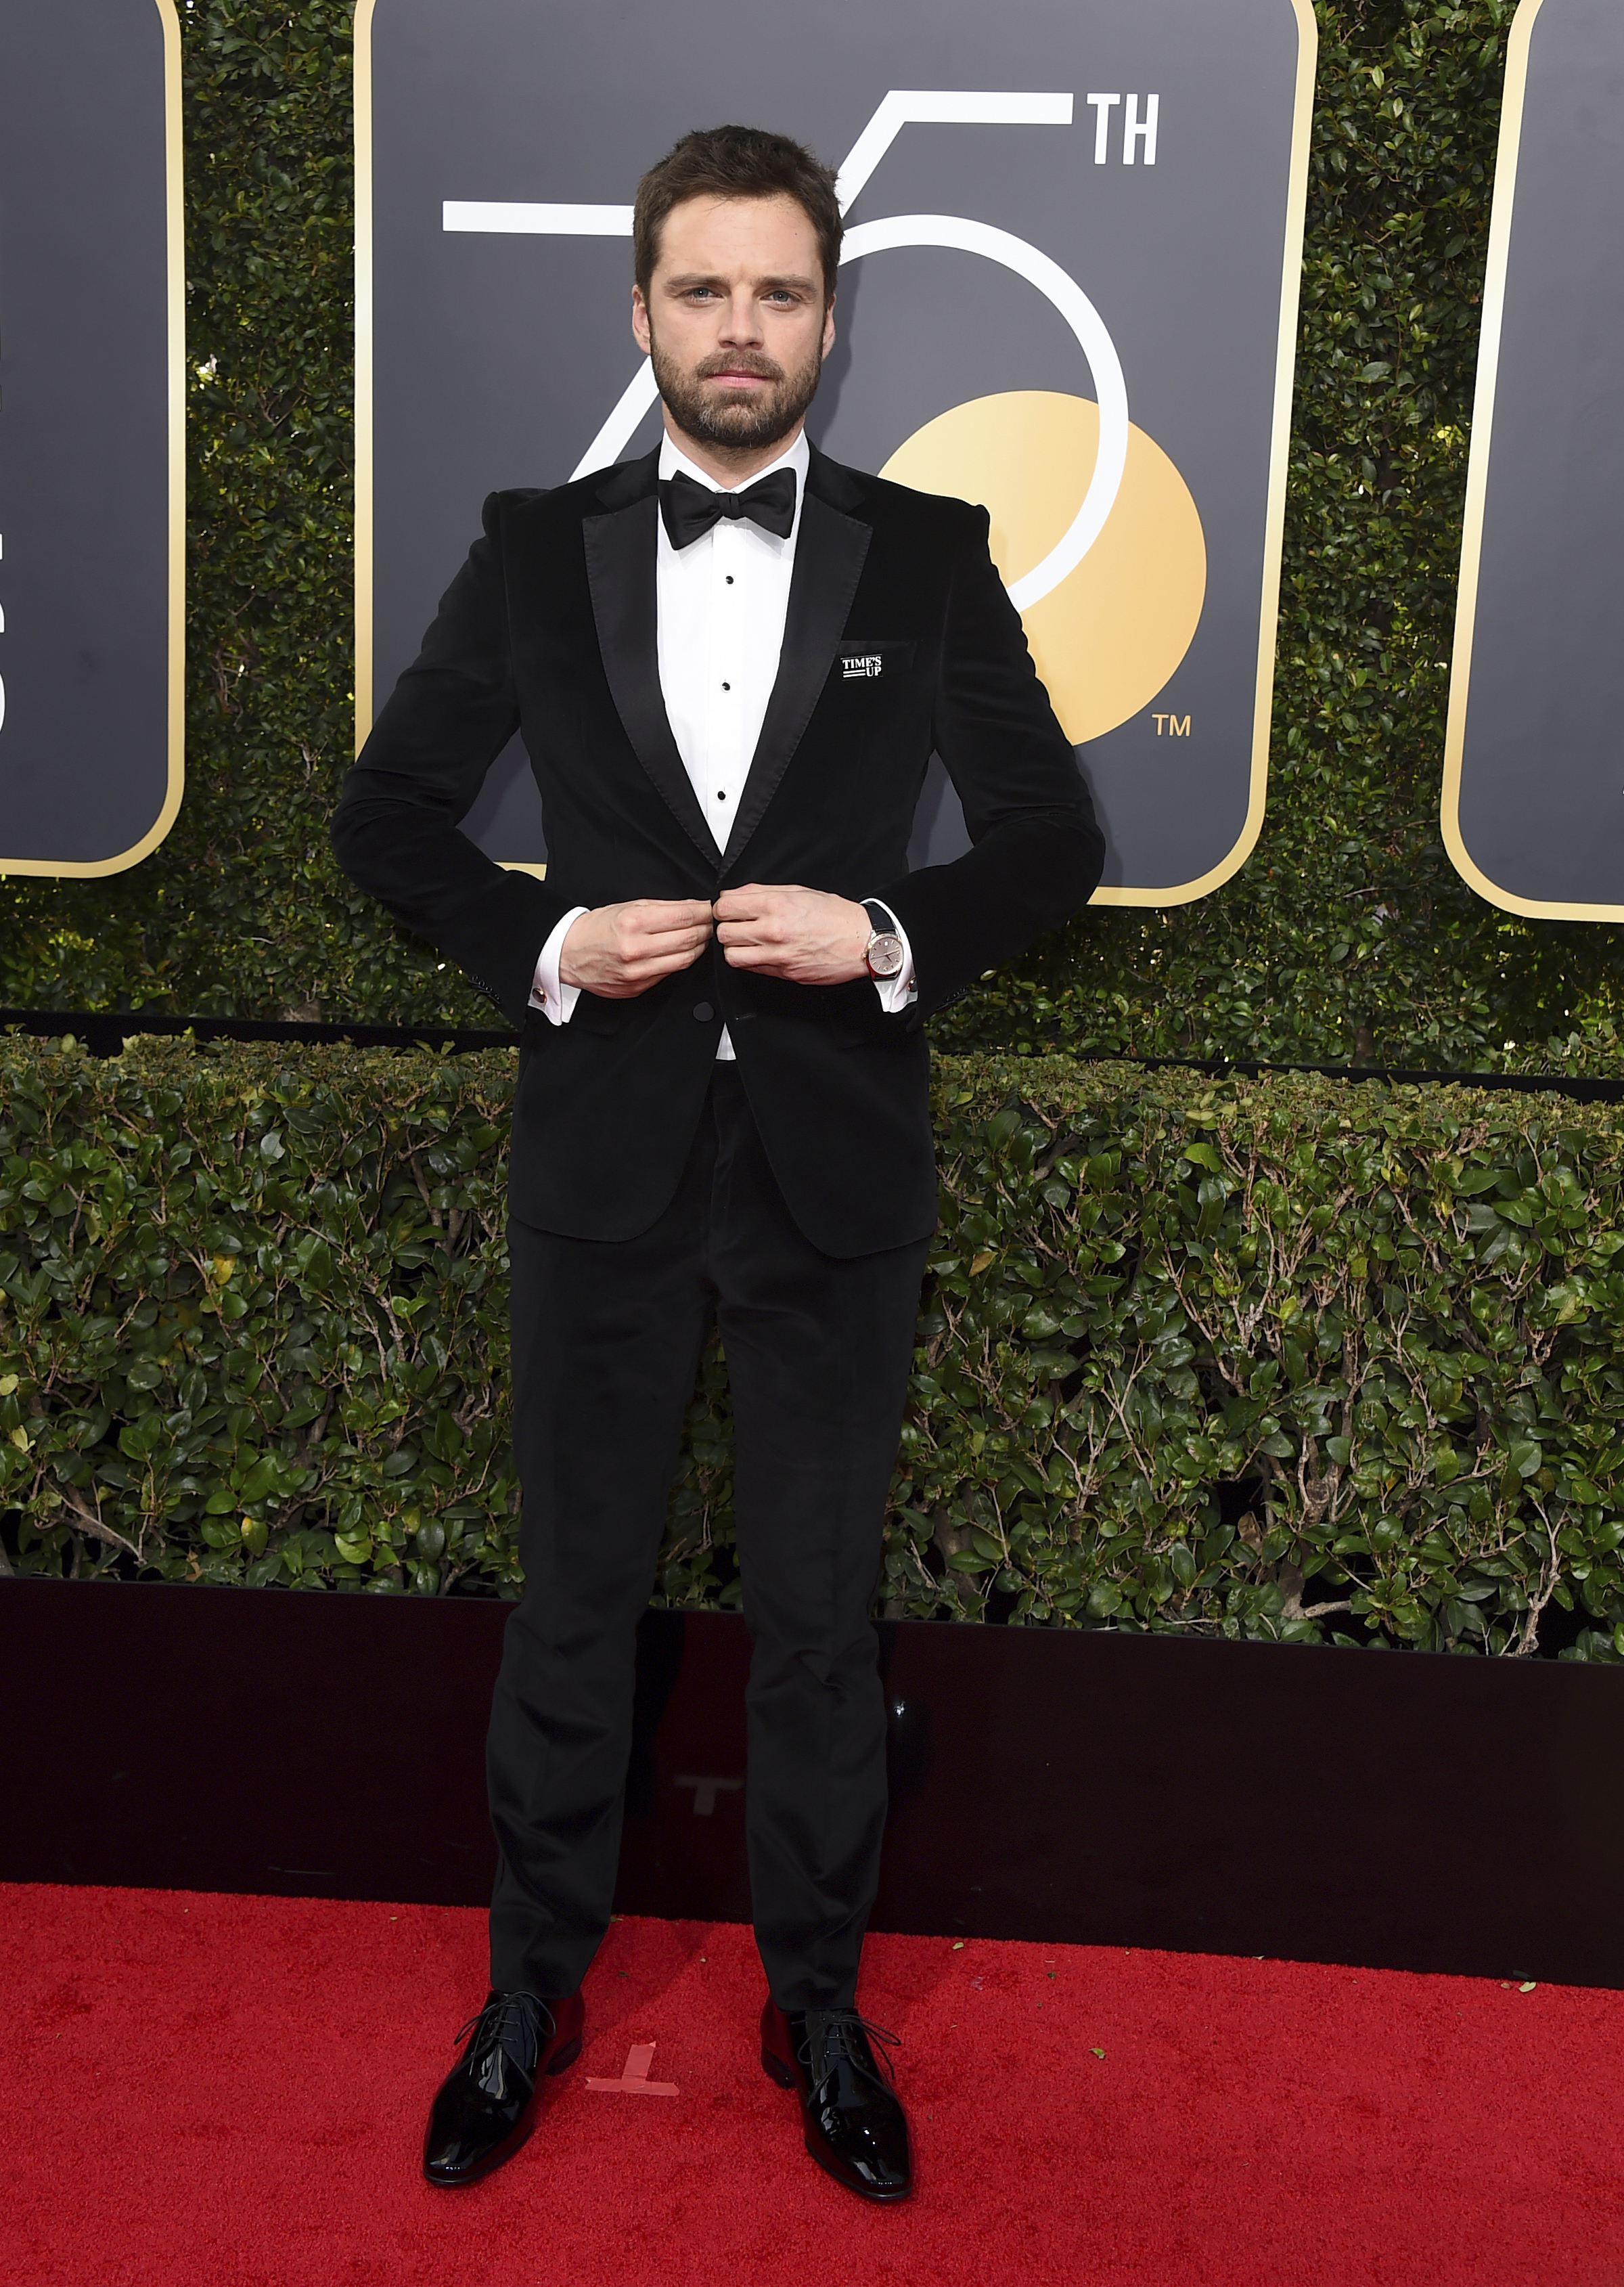 <div class='meta'><div class='origin-logo' data-origin='AP'></div><span class='caption-text' data-credit='Jordan Strauss/Invision/AP'>Sebastian Stan arrives at the 75th annual Golden Globe Awards at the Beverly Hilton Hotel on Sunday, Jan. 7, 2018, in Beverly Hills, Calif.</span></div>